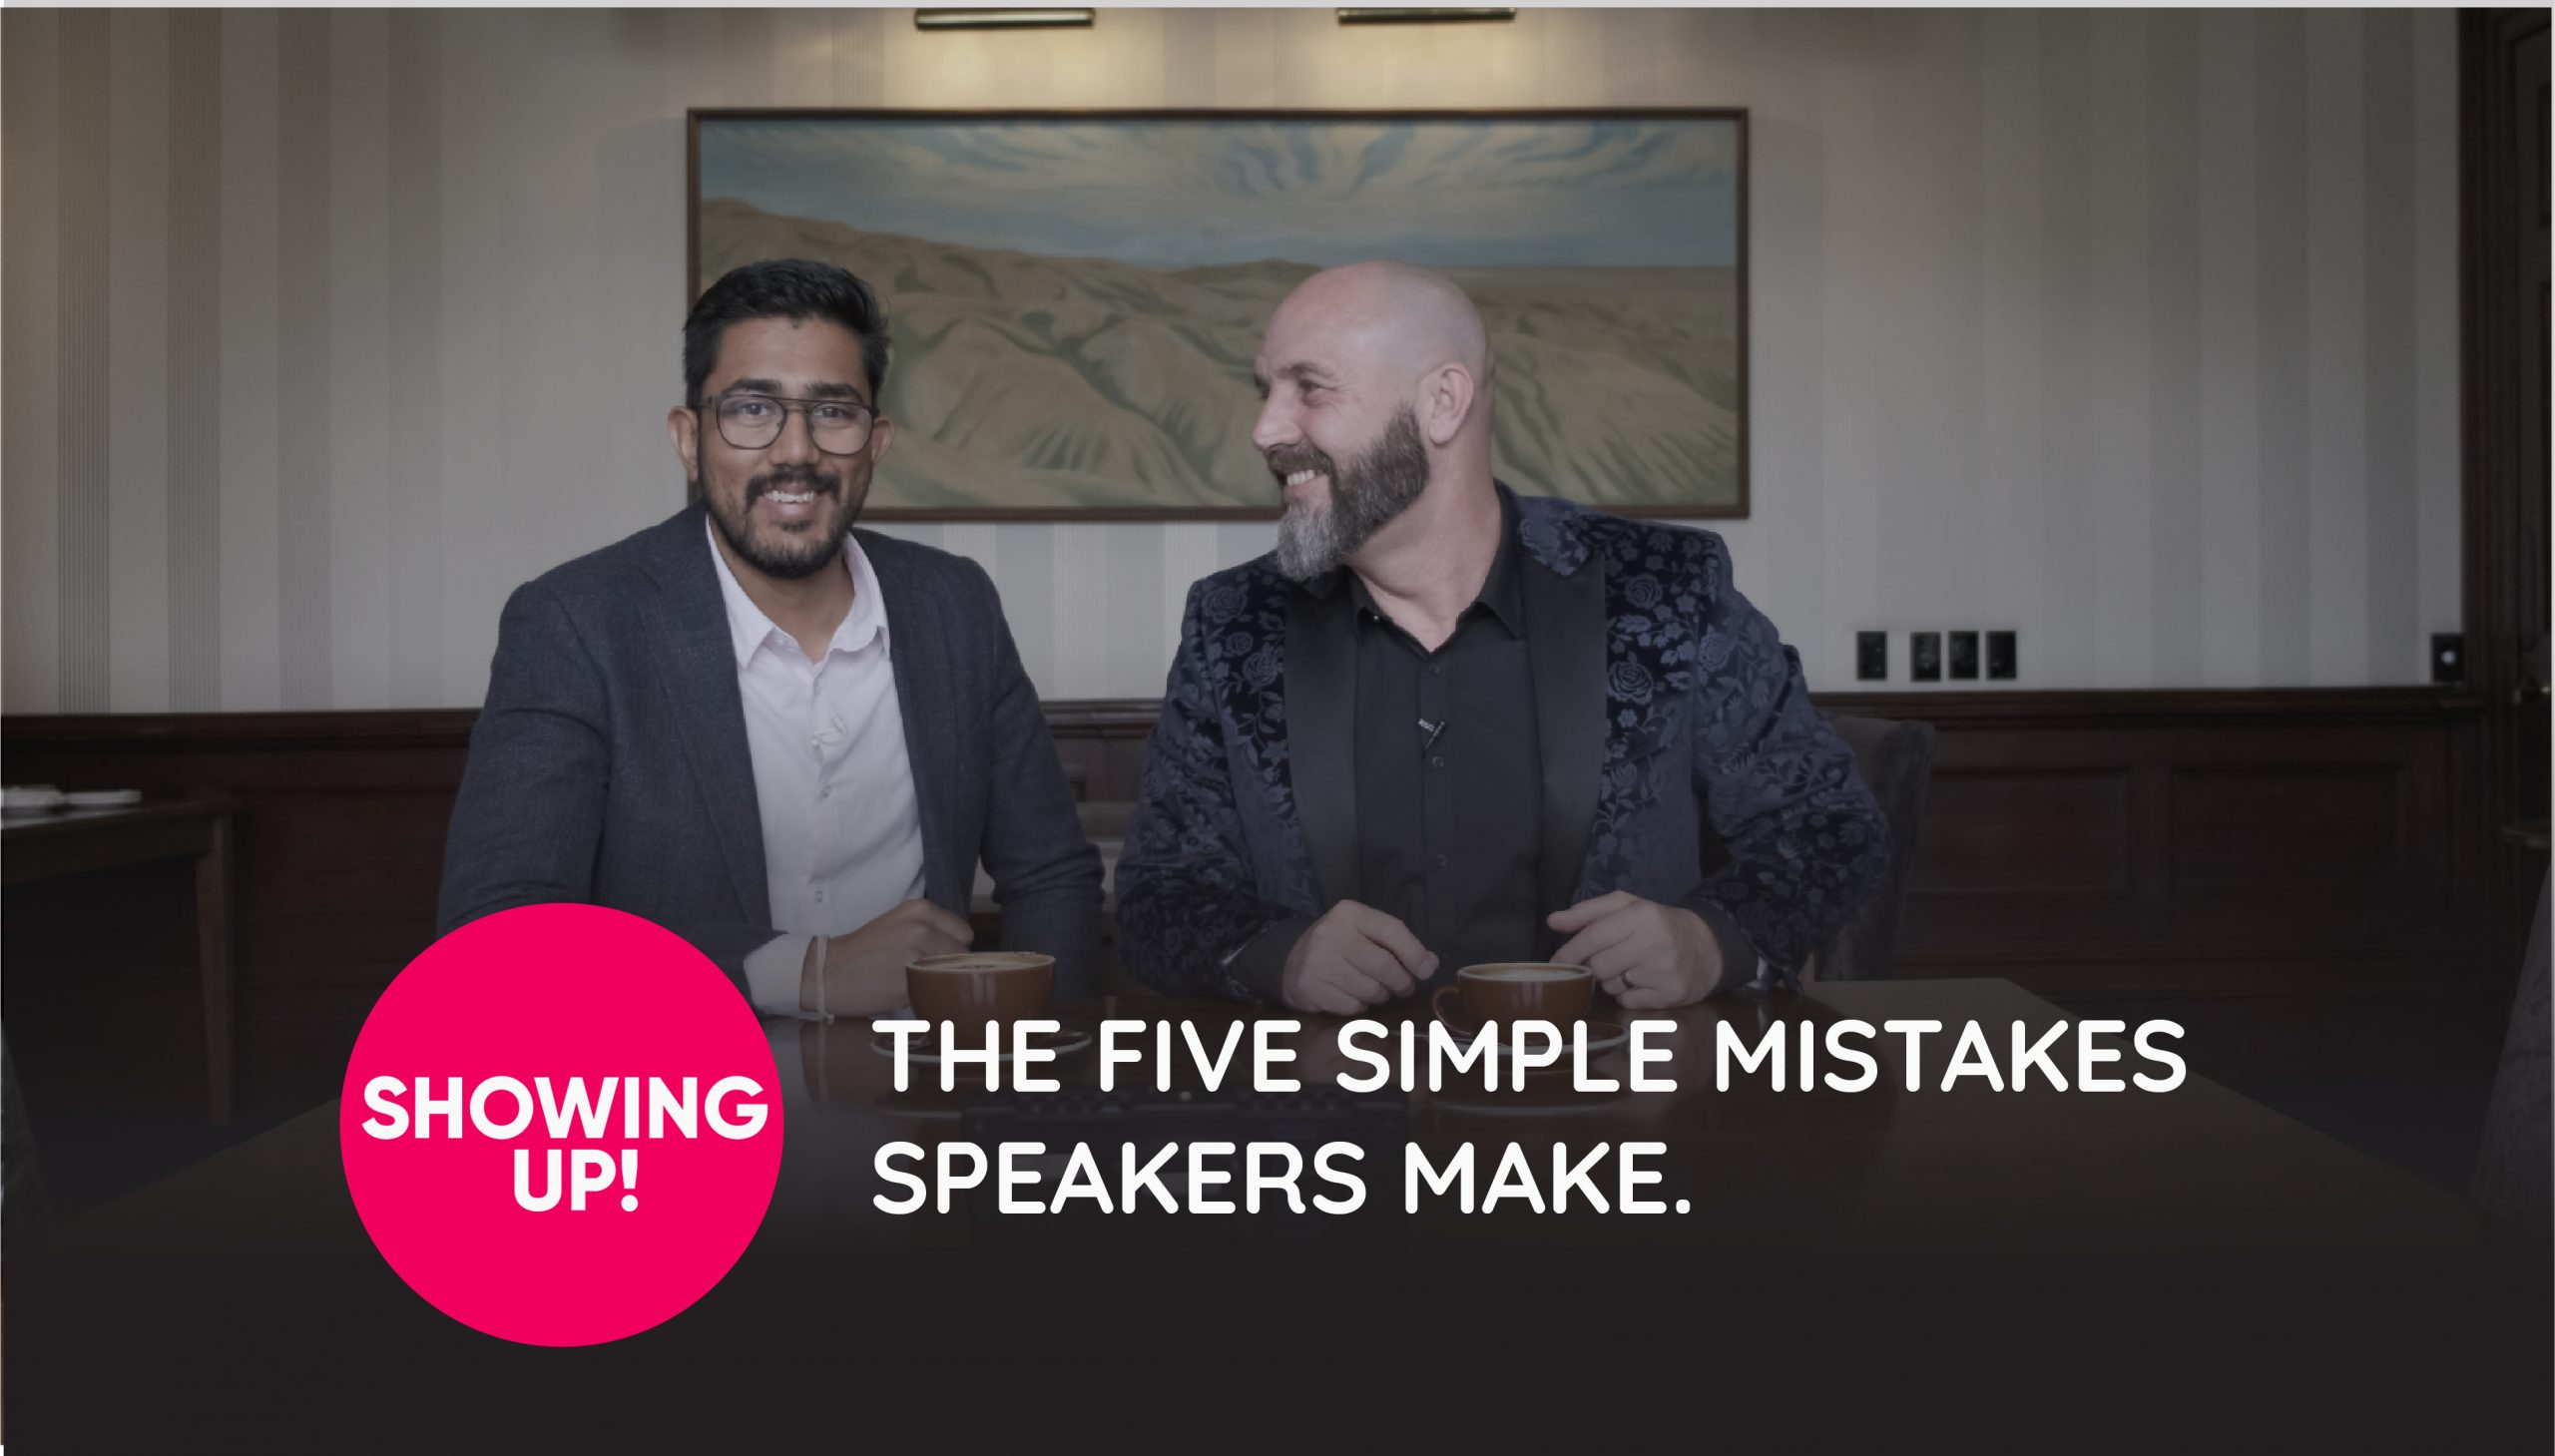 Showing Up! Episode 11 Five Simple Mistakes Speakers Make